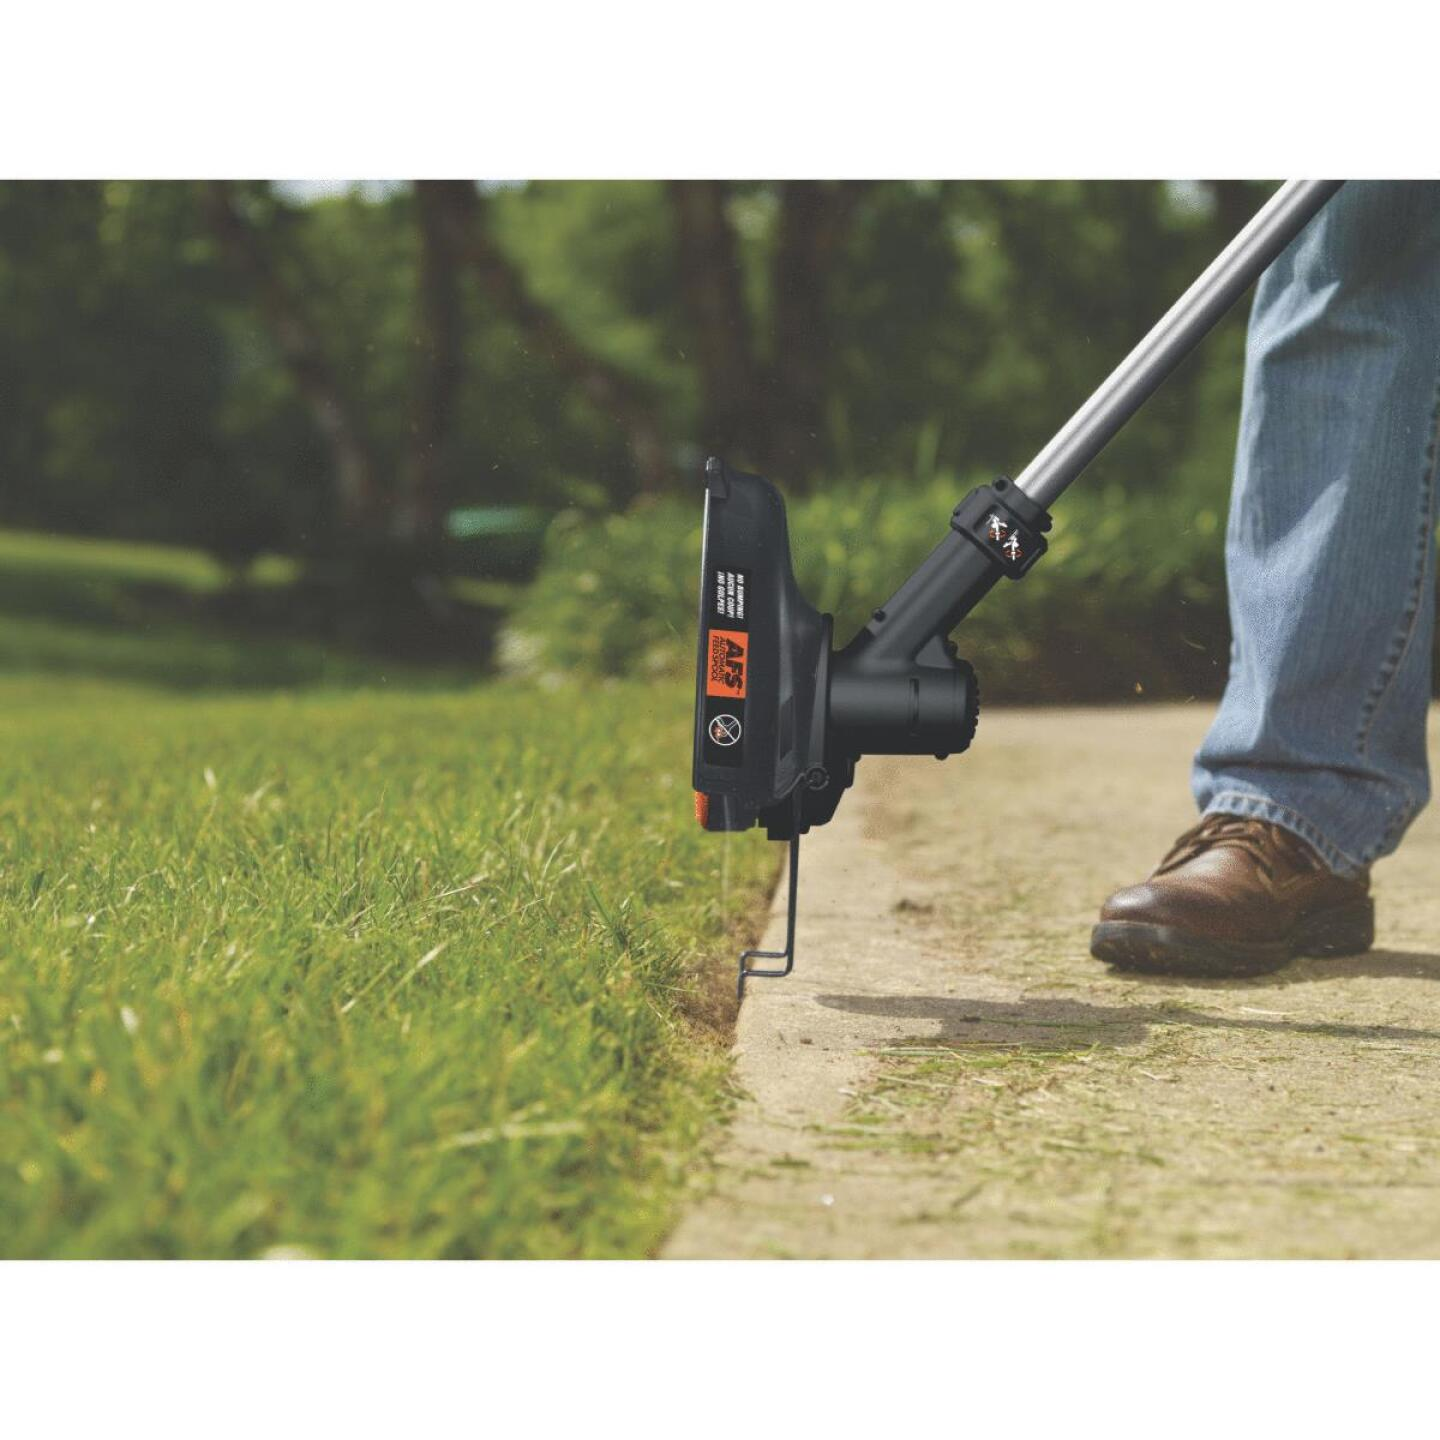 Black & Decker 40V MAX 13 In. Lithium Ion Straight Cordless String Trimmer Image 4